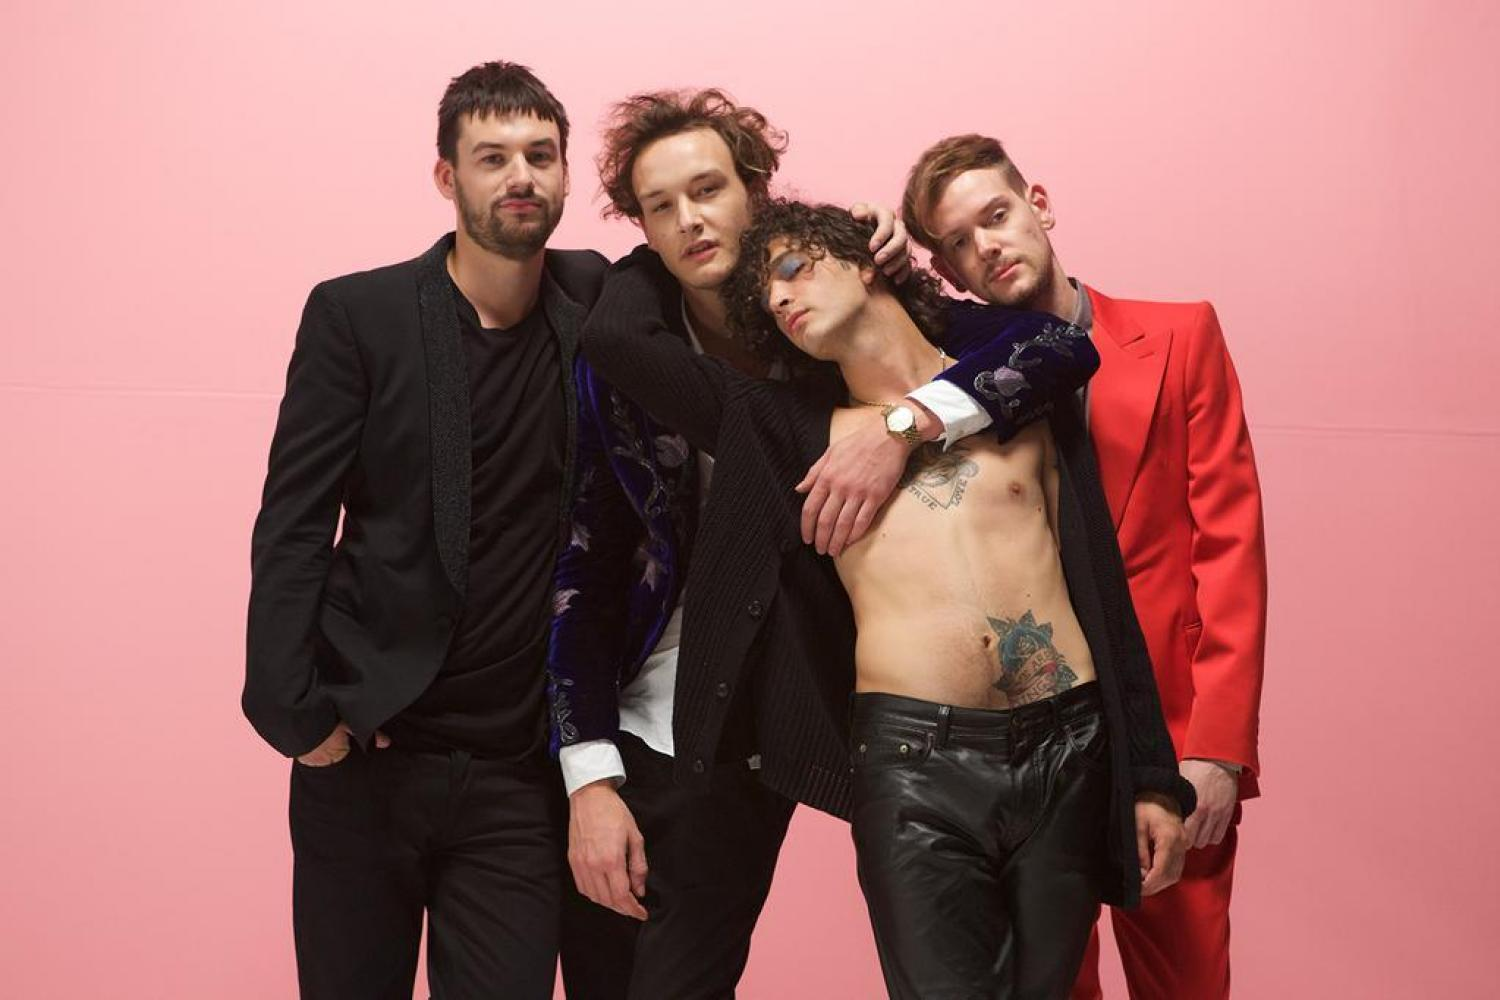 the 1975, love me, new music, ultimate spotlight, ultimate spotlight magazine, usl magazine, uslmagazine.com, usl mag, uslmag.com, uslmag, ultimate spotlight, atlanta music magazine, baltimore music magazine, d.c. music magazine